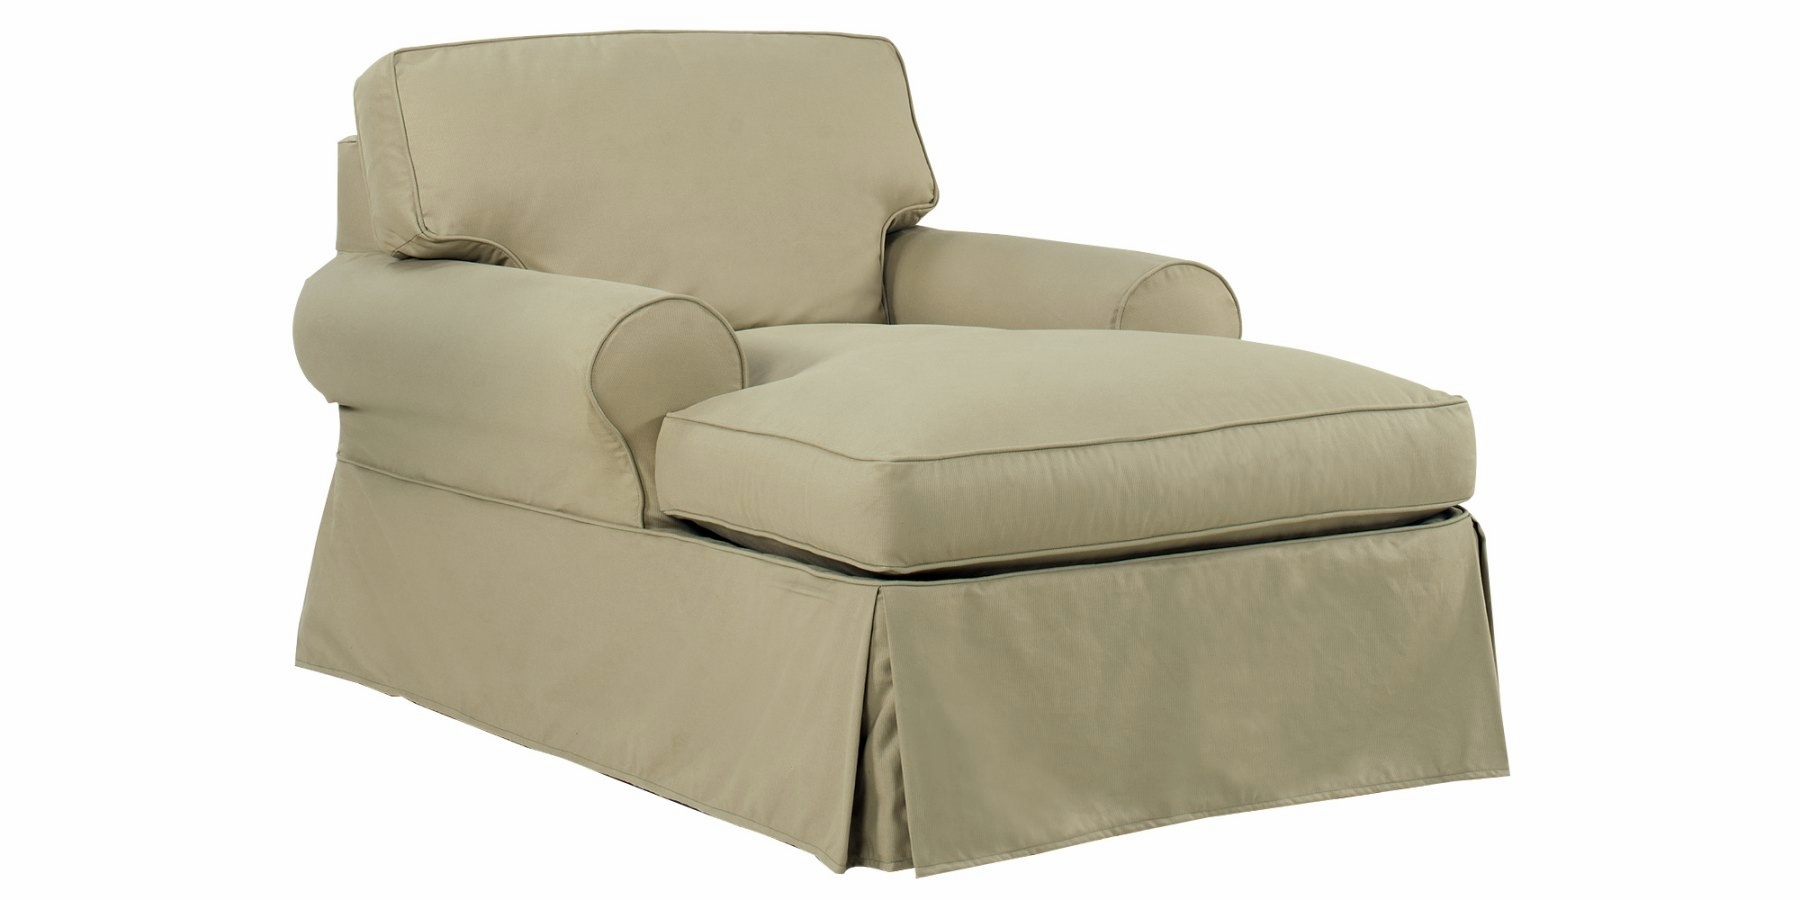 Furniture Microfiber Chaise Lounge For Comfortable Sofa Design Throughout Lounge Sofas And Chairs (Image 7 of 15)